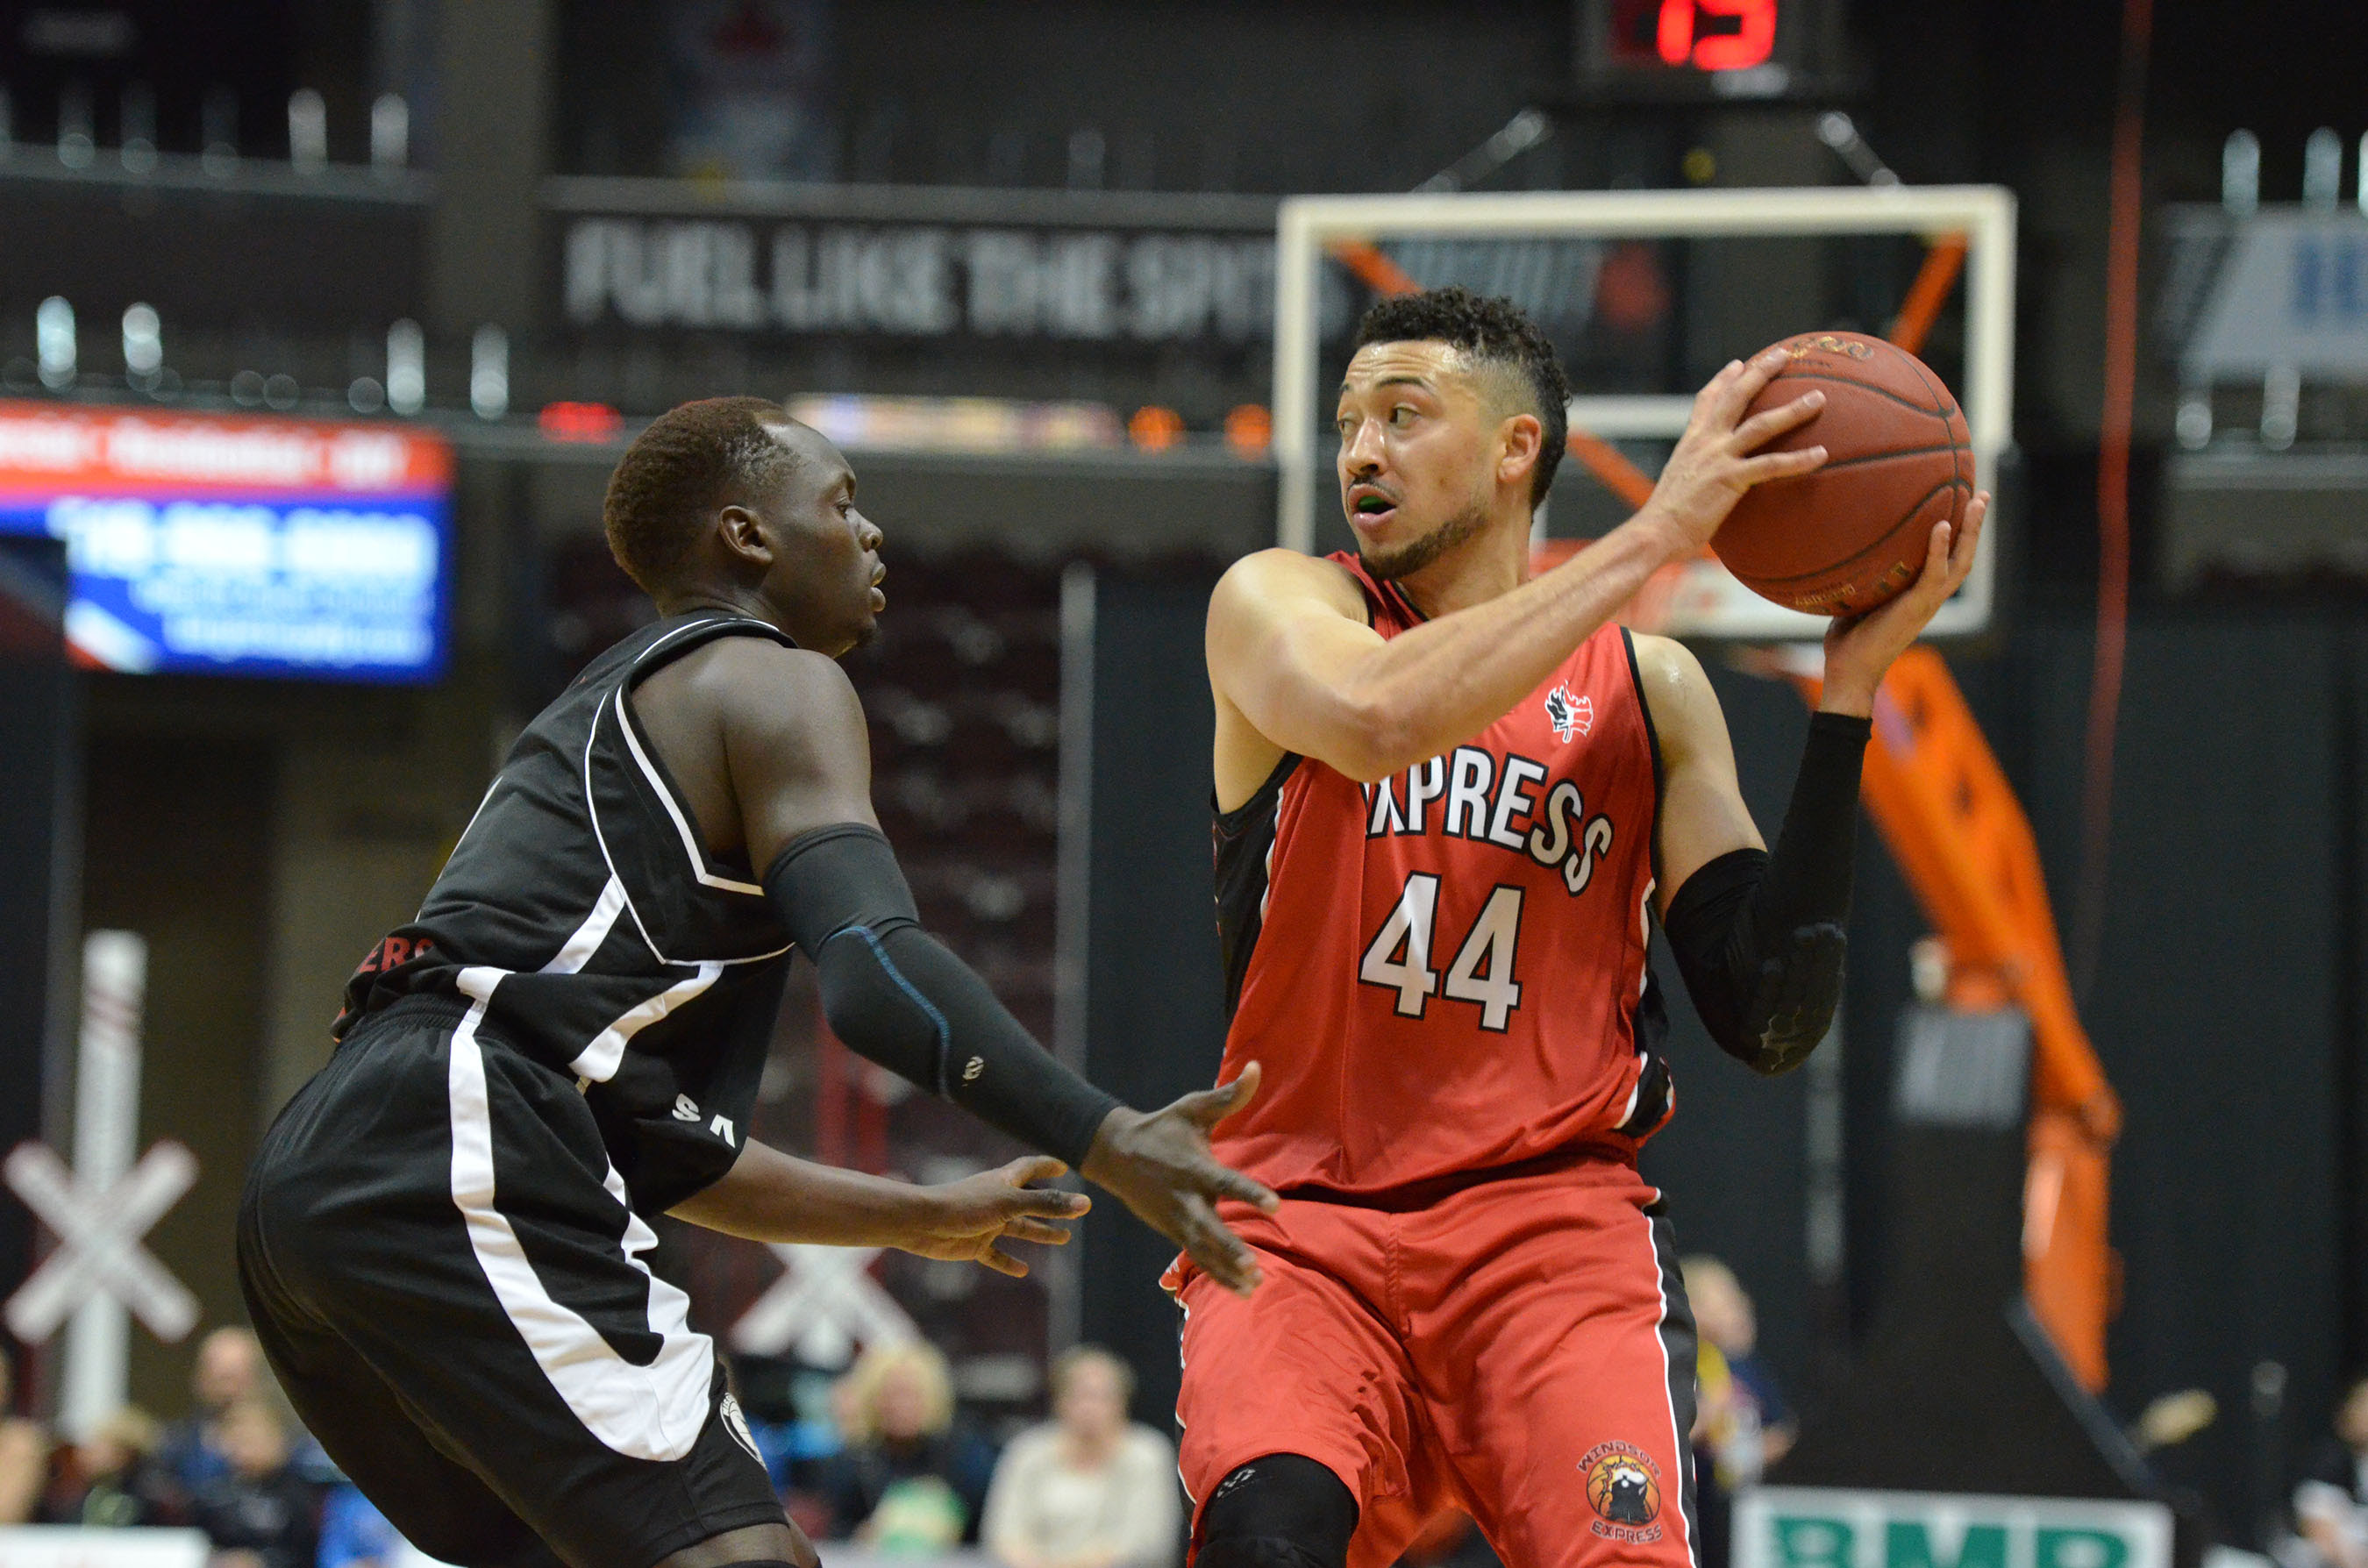 The Windsor Express take on the Mississauga Power at the WFCU Centre, November 15, 2014. (Photo courtesy of the Windsor Express)